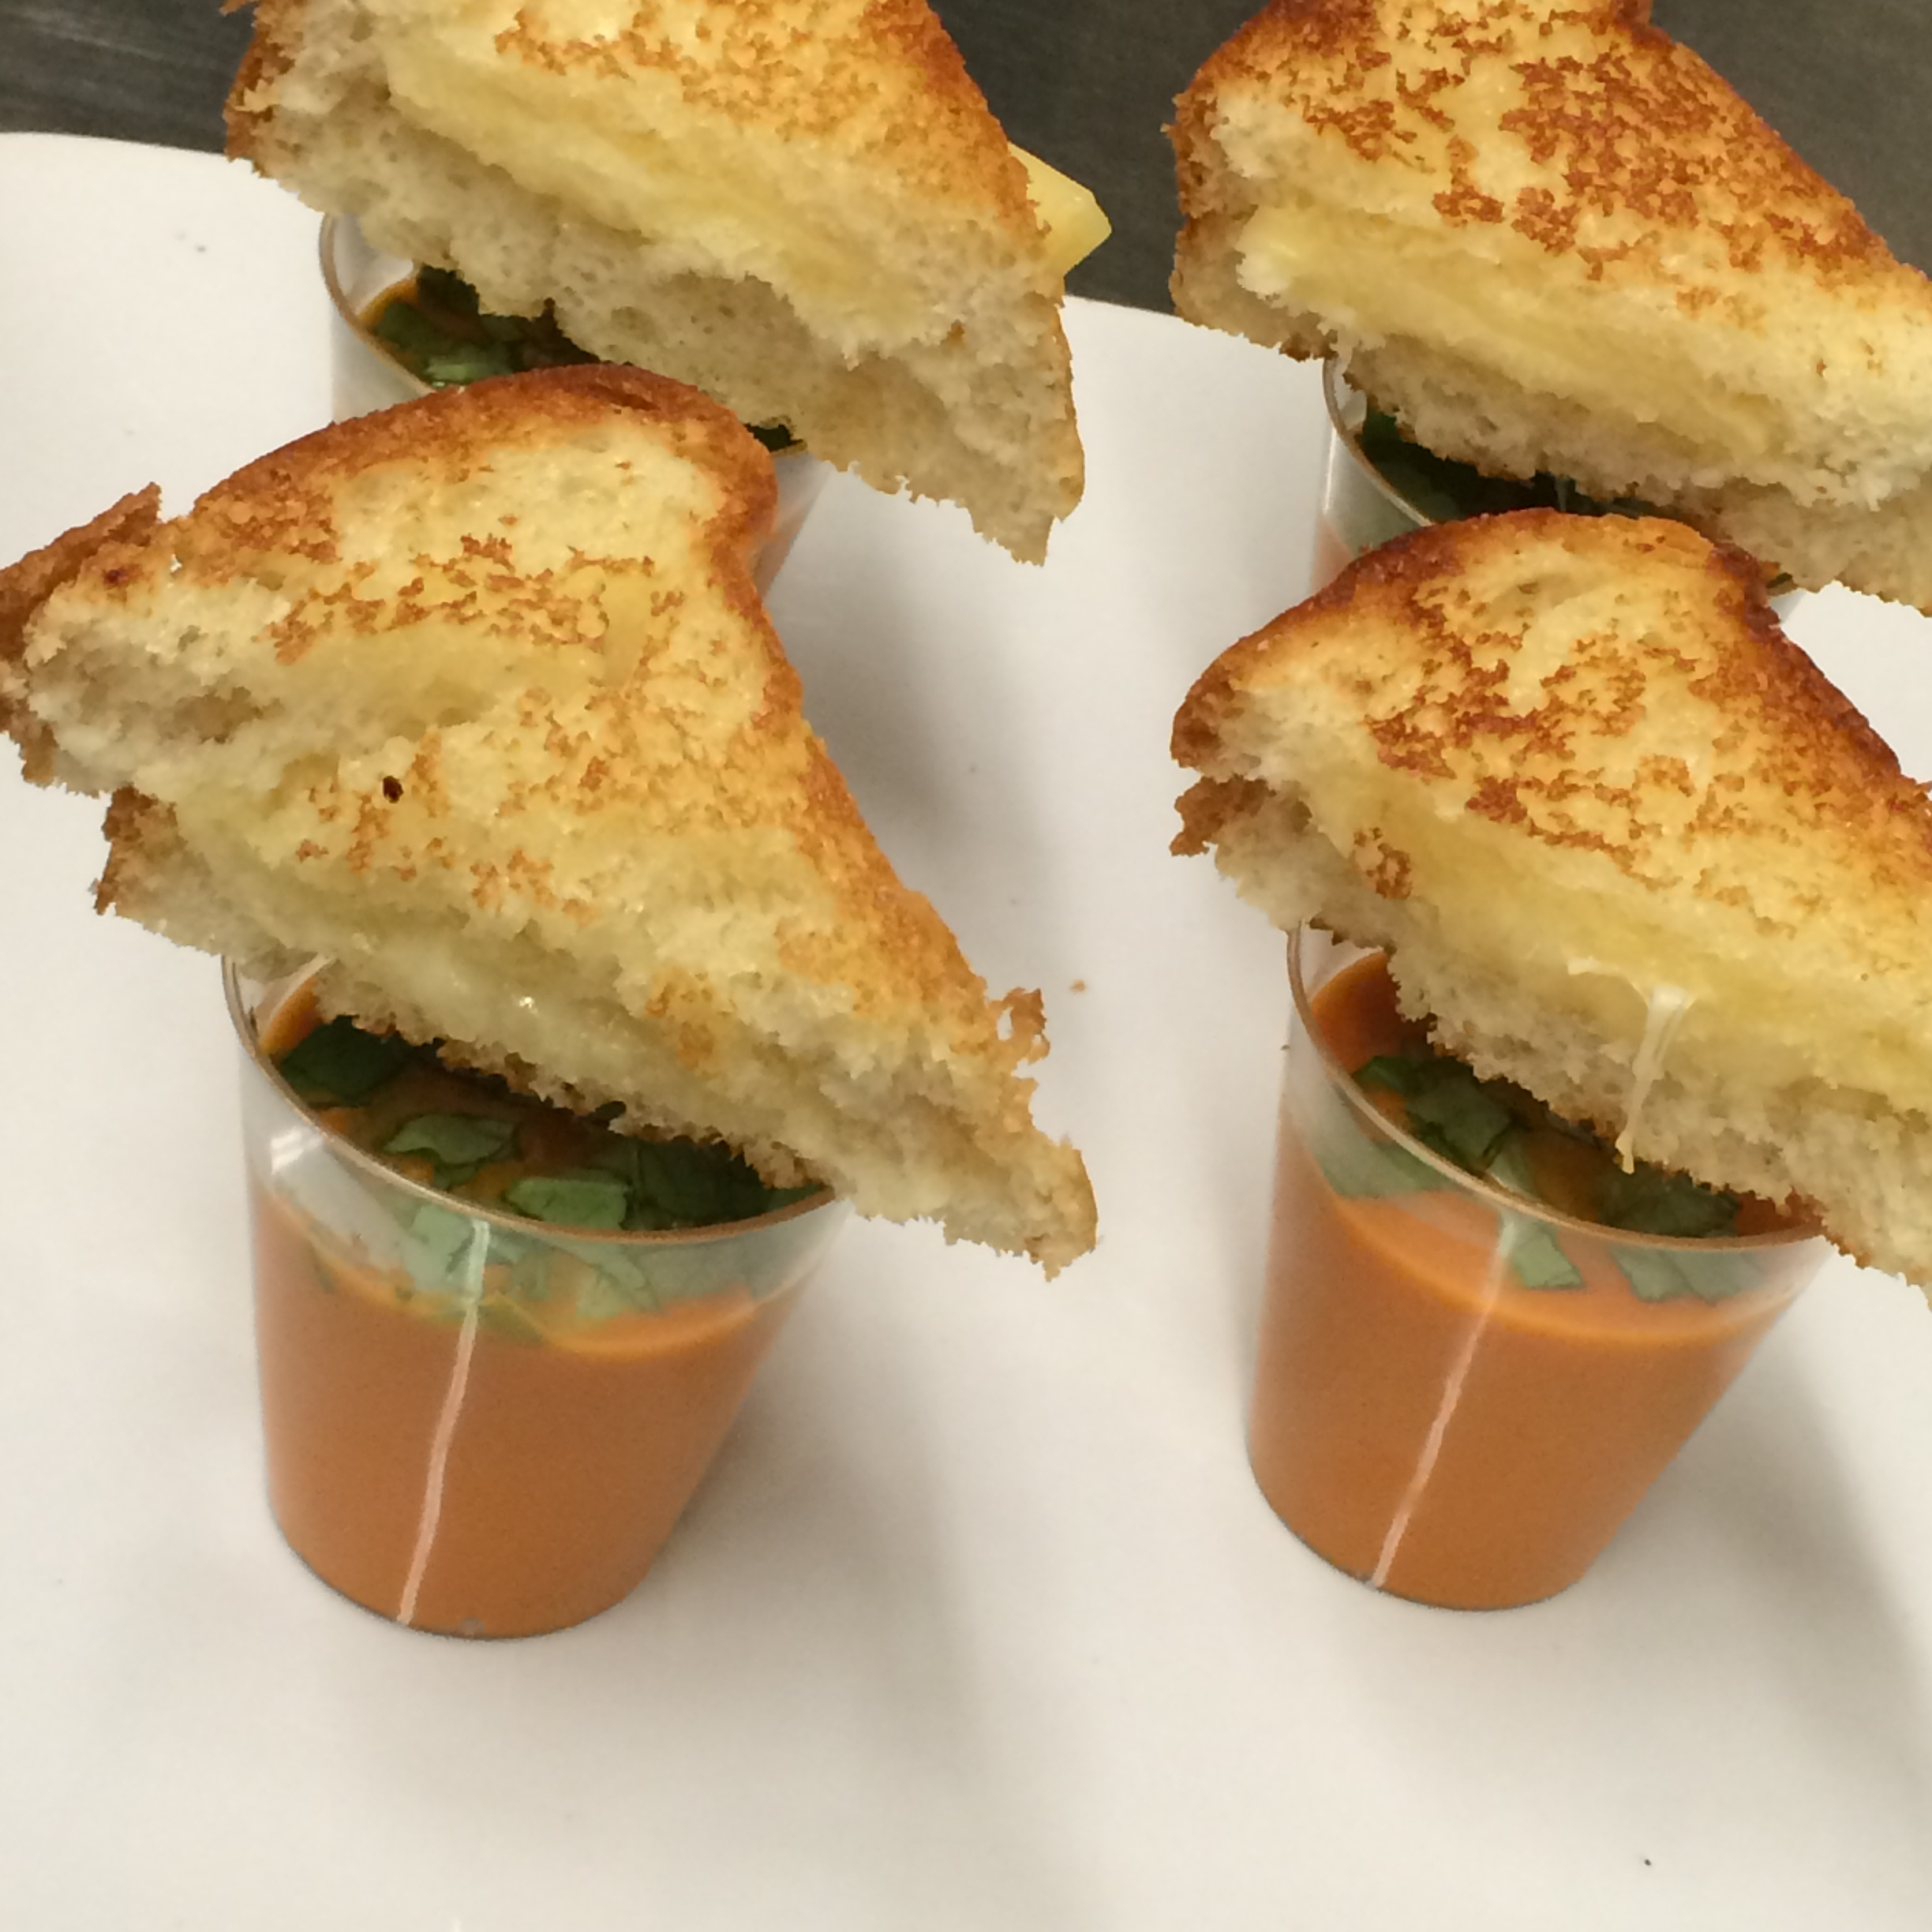 Creamy tomato soup shooters served with mini grilled cheese sandwiches small plates from LeCroissant Catering & Events Gourmet Small Plates by LeCroissant Catering & Events Gourmet Small Plates by LeCroissant Catering & Events 2015 07 30 18